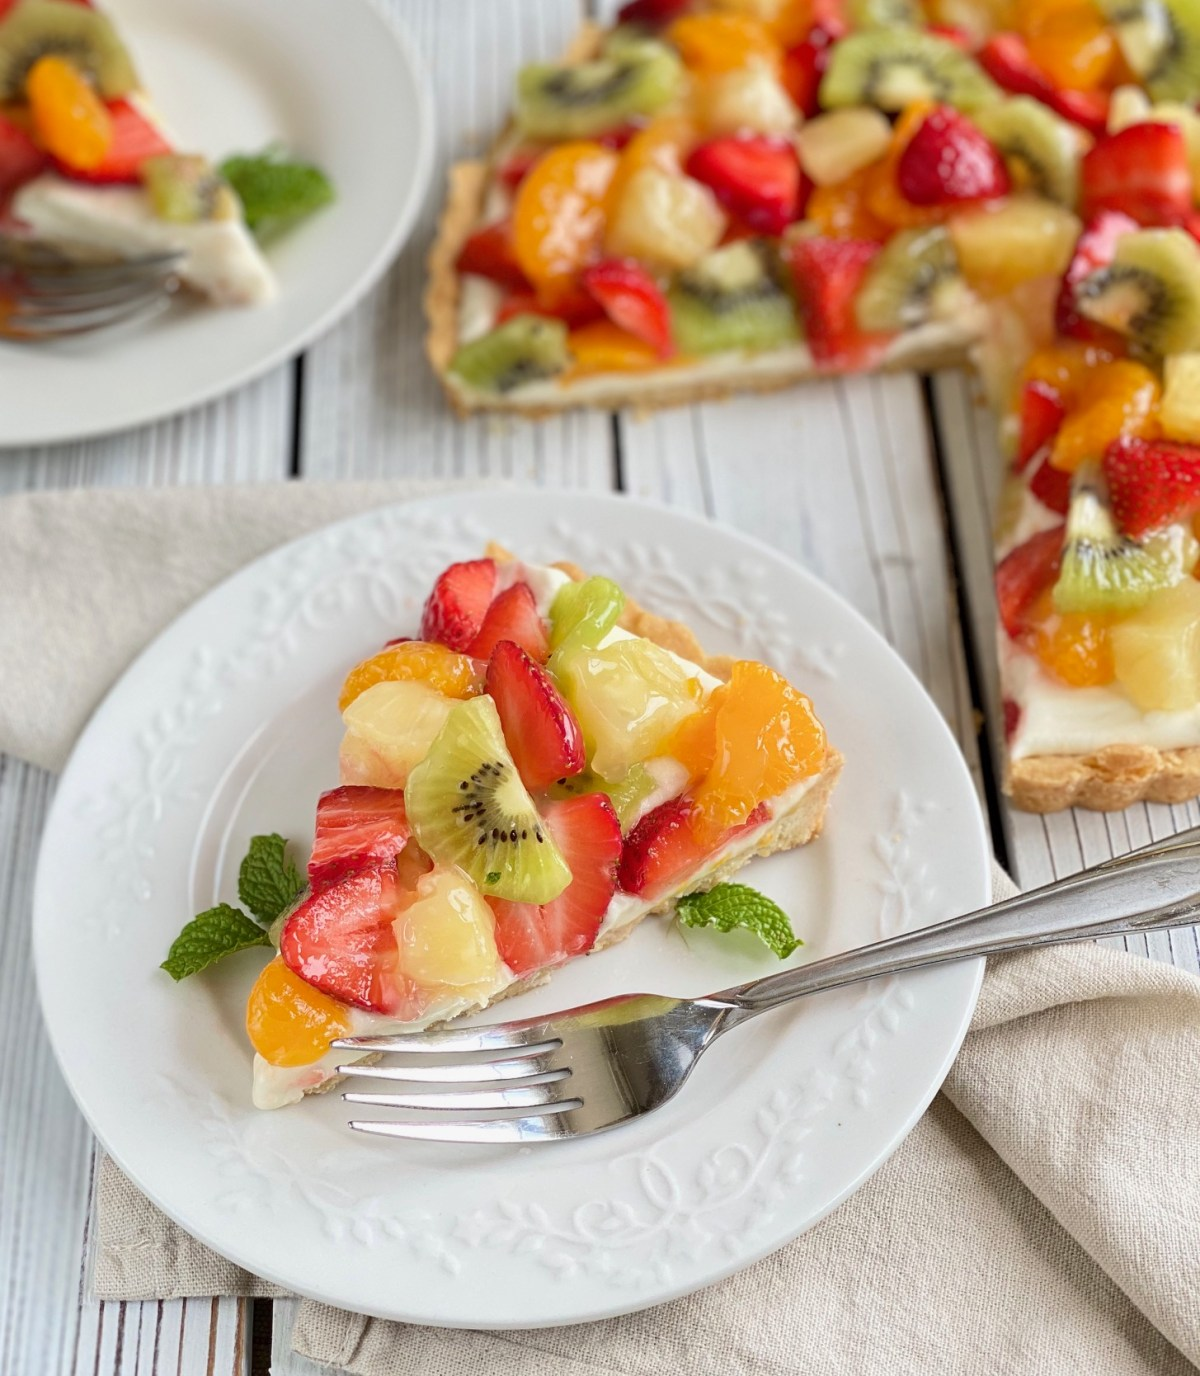 White Chocolate Fruit Tart by Happylifeblogspot.com #tart #whitechocolatefruittart #fruittart #tropicalfruittart #summerdessert #summerparty #holidaydessert